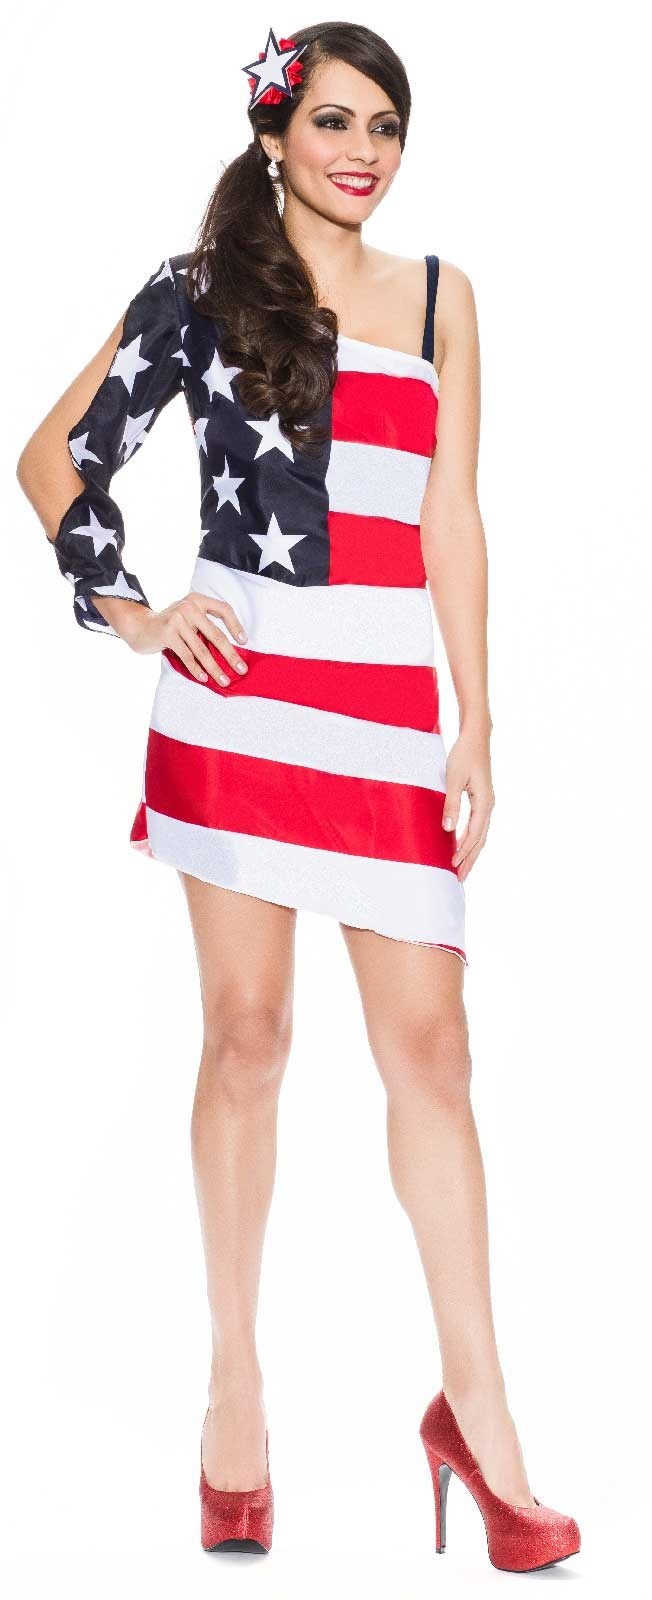 Th of july star spangled sweetie womens costume